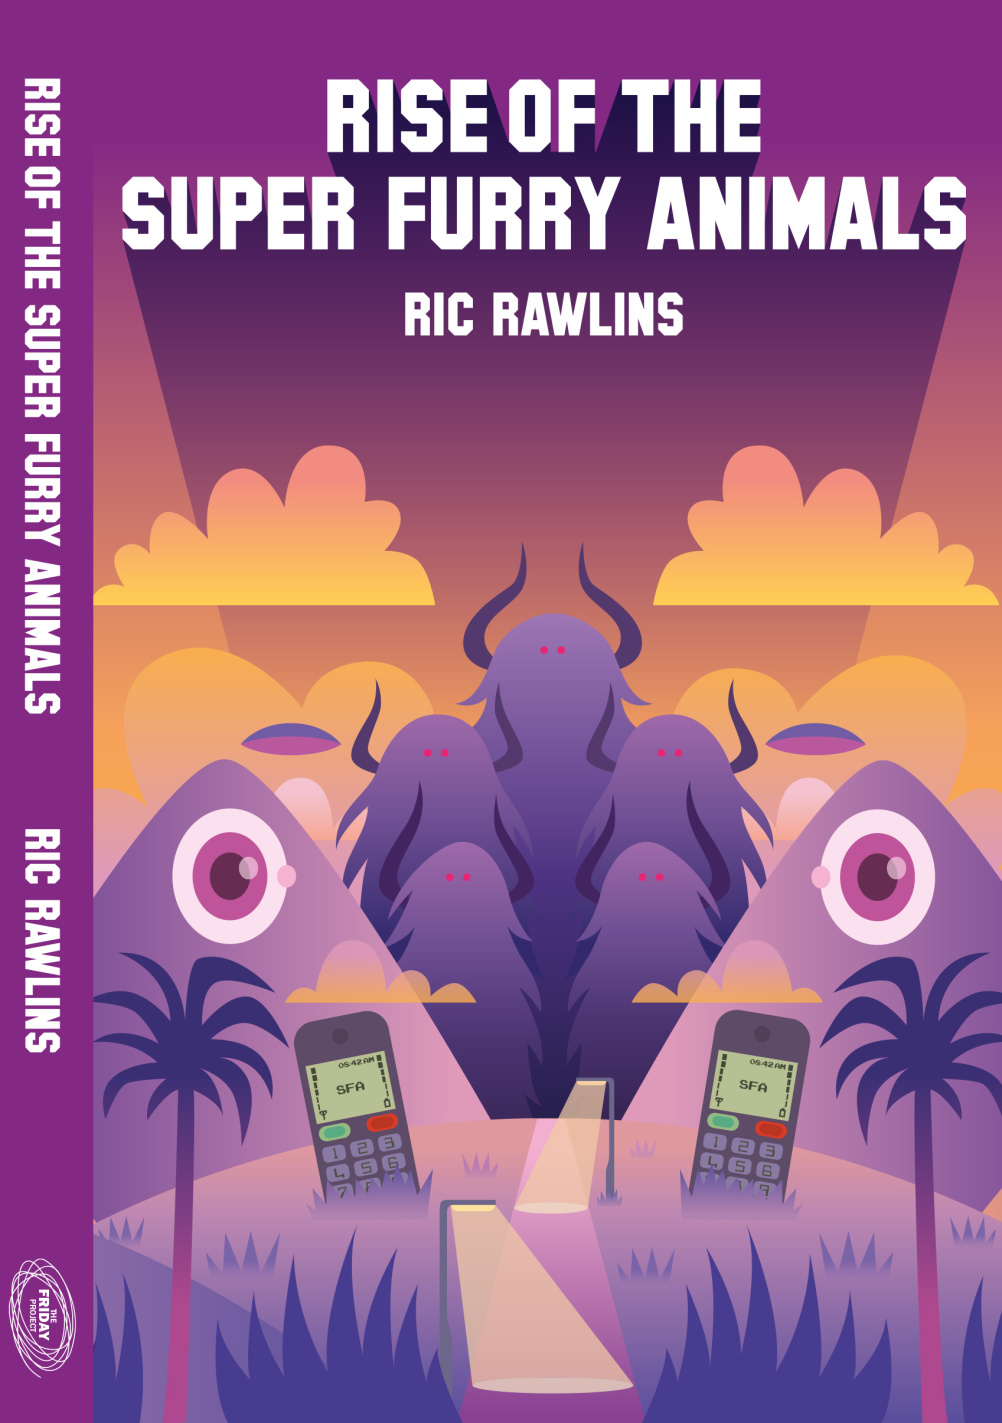 Rise of the Super Furry Animals art by Pete Fowler